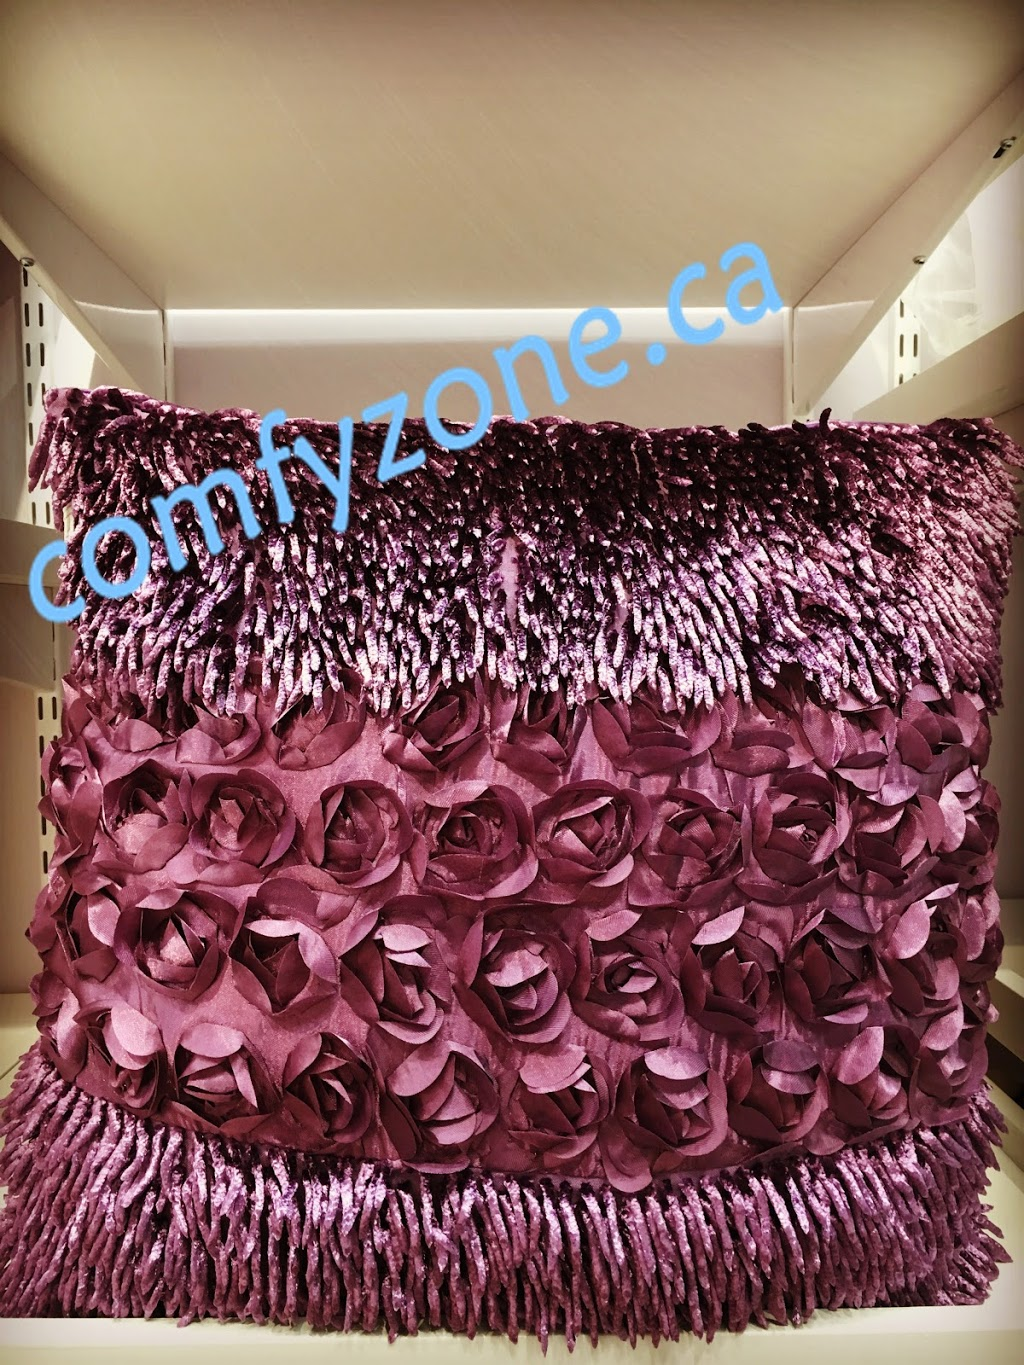 Comfy Zone Home Beddings Ltd | home goods store | 118 Wyse Rd #5, Dartmouth, NS B3A 1N7, Canada | 9024400657 OR +1 902-440-0657